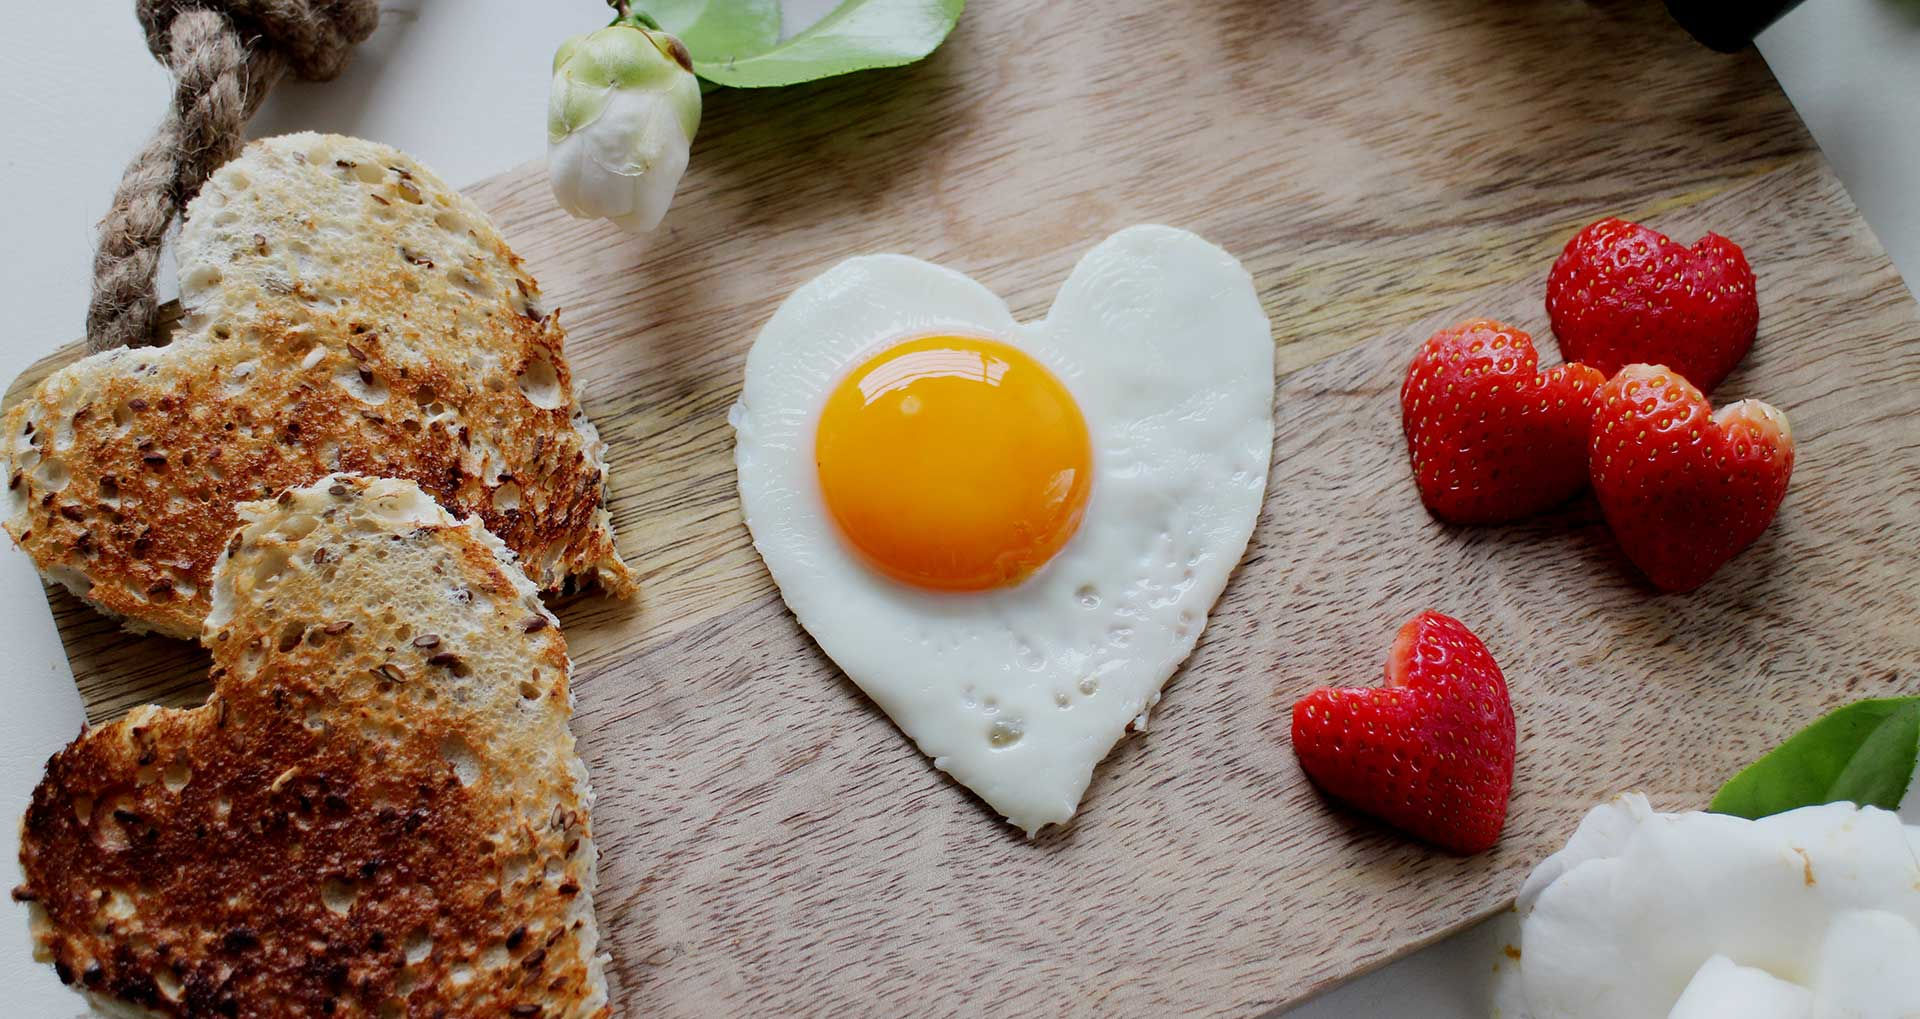 Not just fruit & vegetables, but also bread & eggs